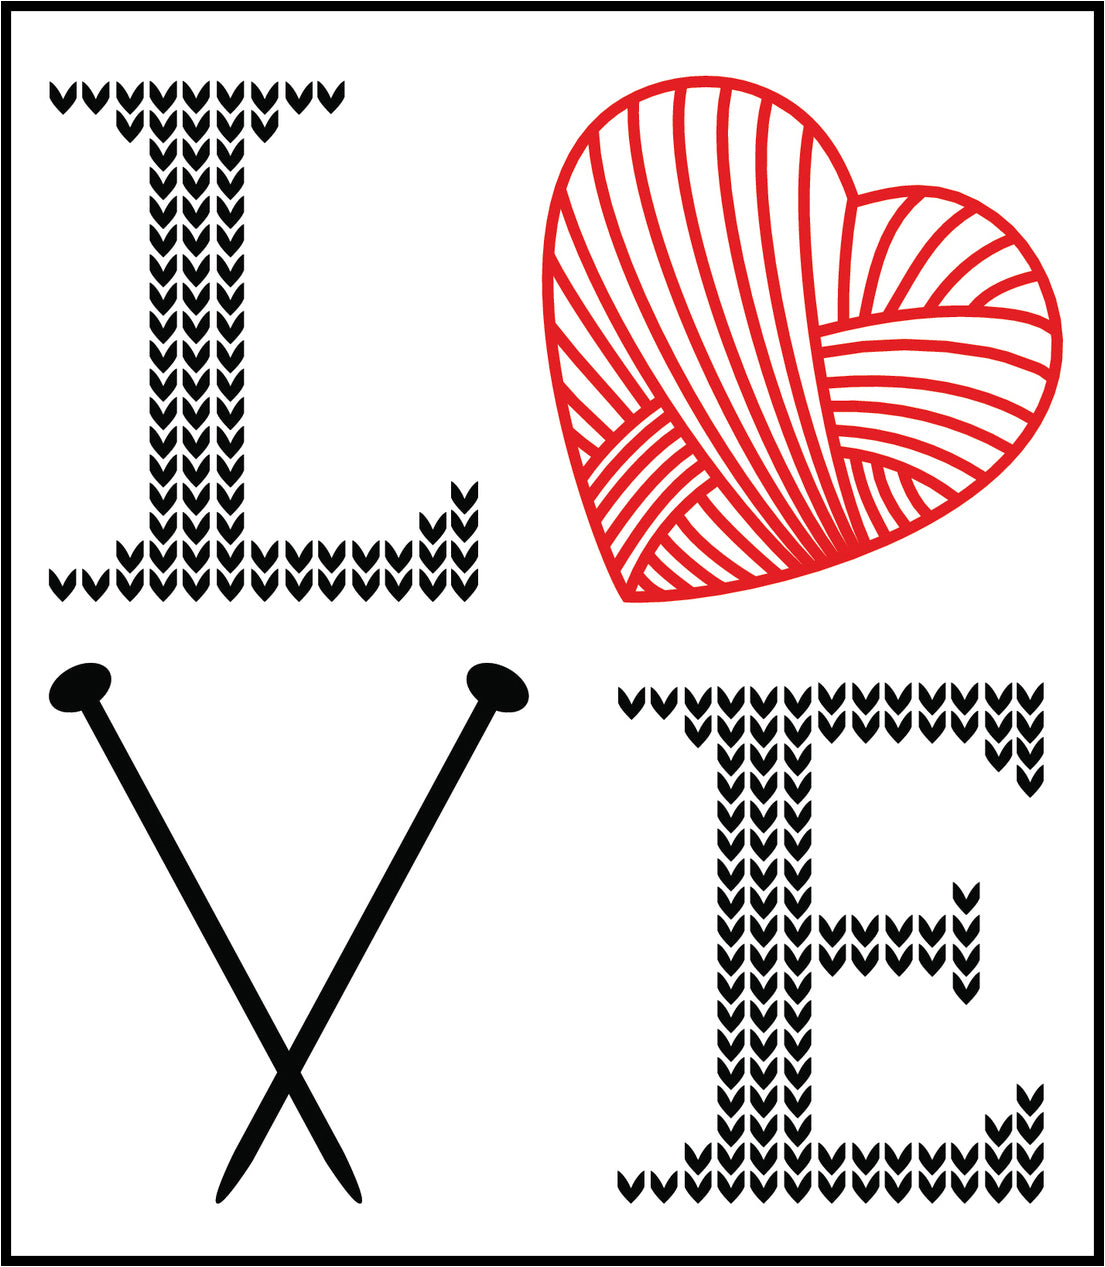 I Love Knitting Heart Art Cartoon Icon #1 Border Around Image As Shown Vinyl Sticker